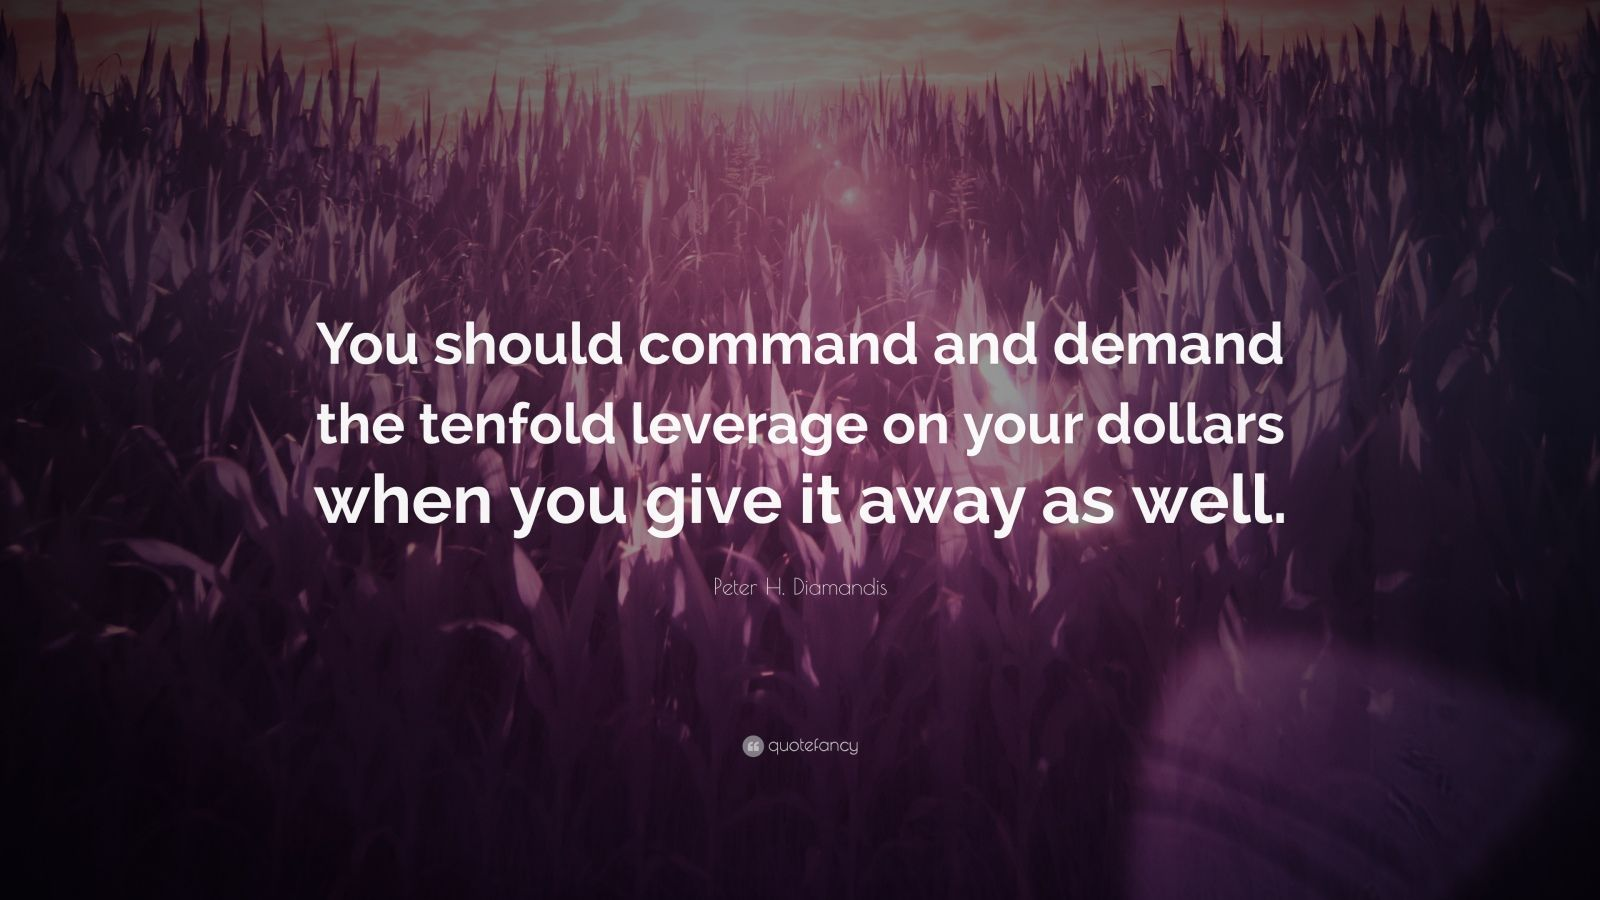 """Peter H. Diamandis Quote: """"You should command and demand the tenfold leverage on your dollars when you give it away as well."""""""